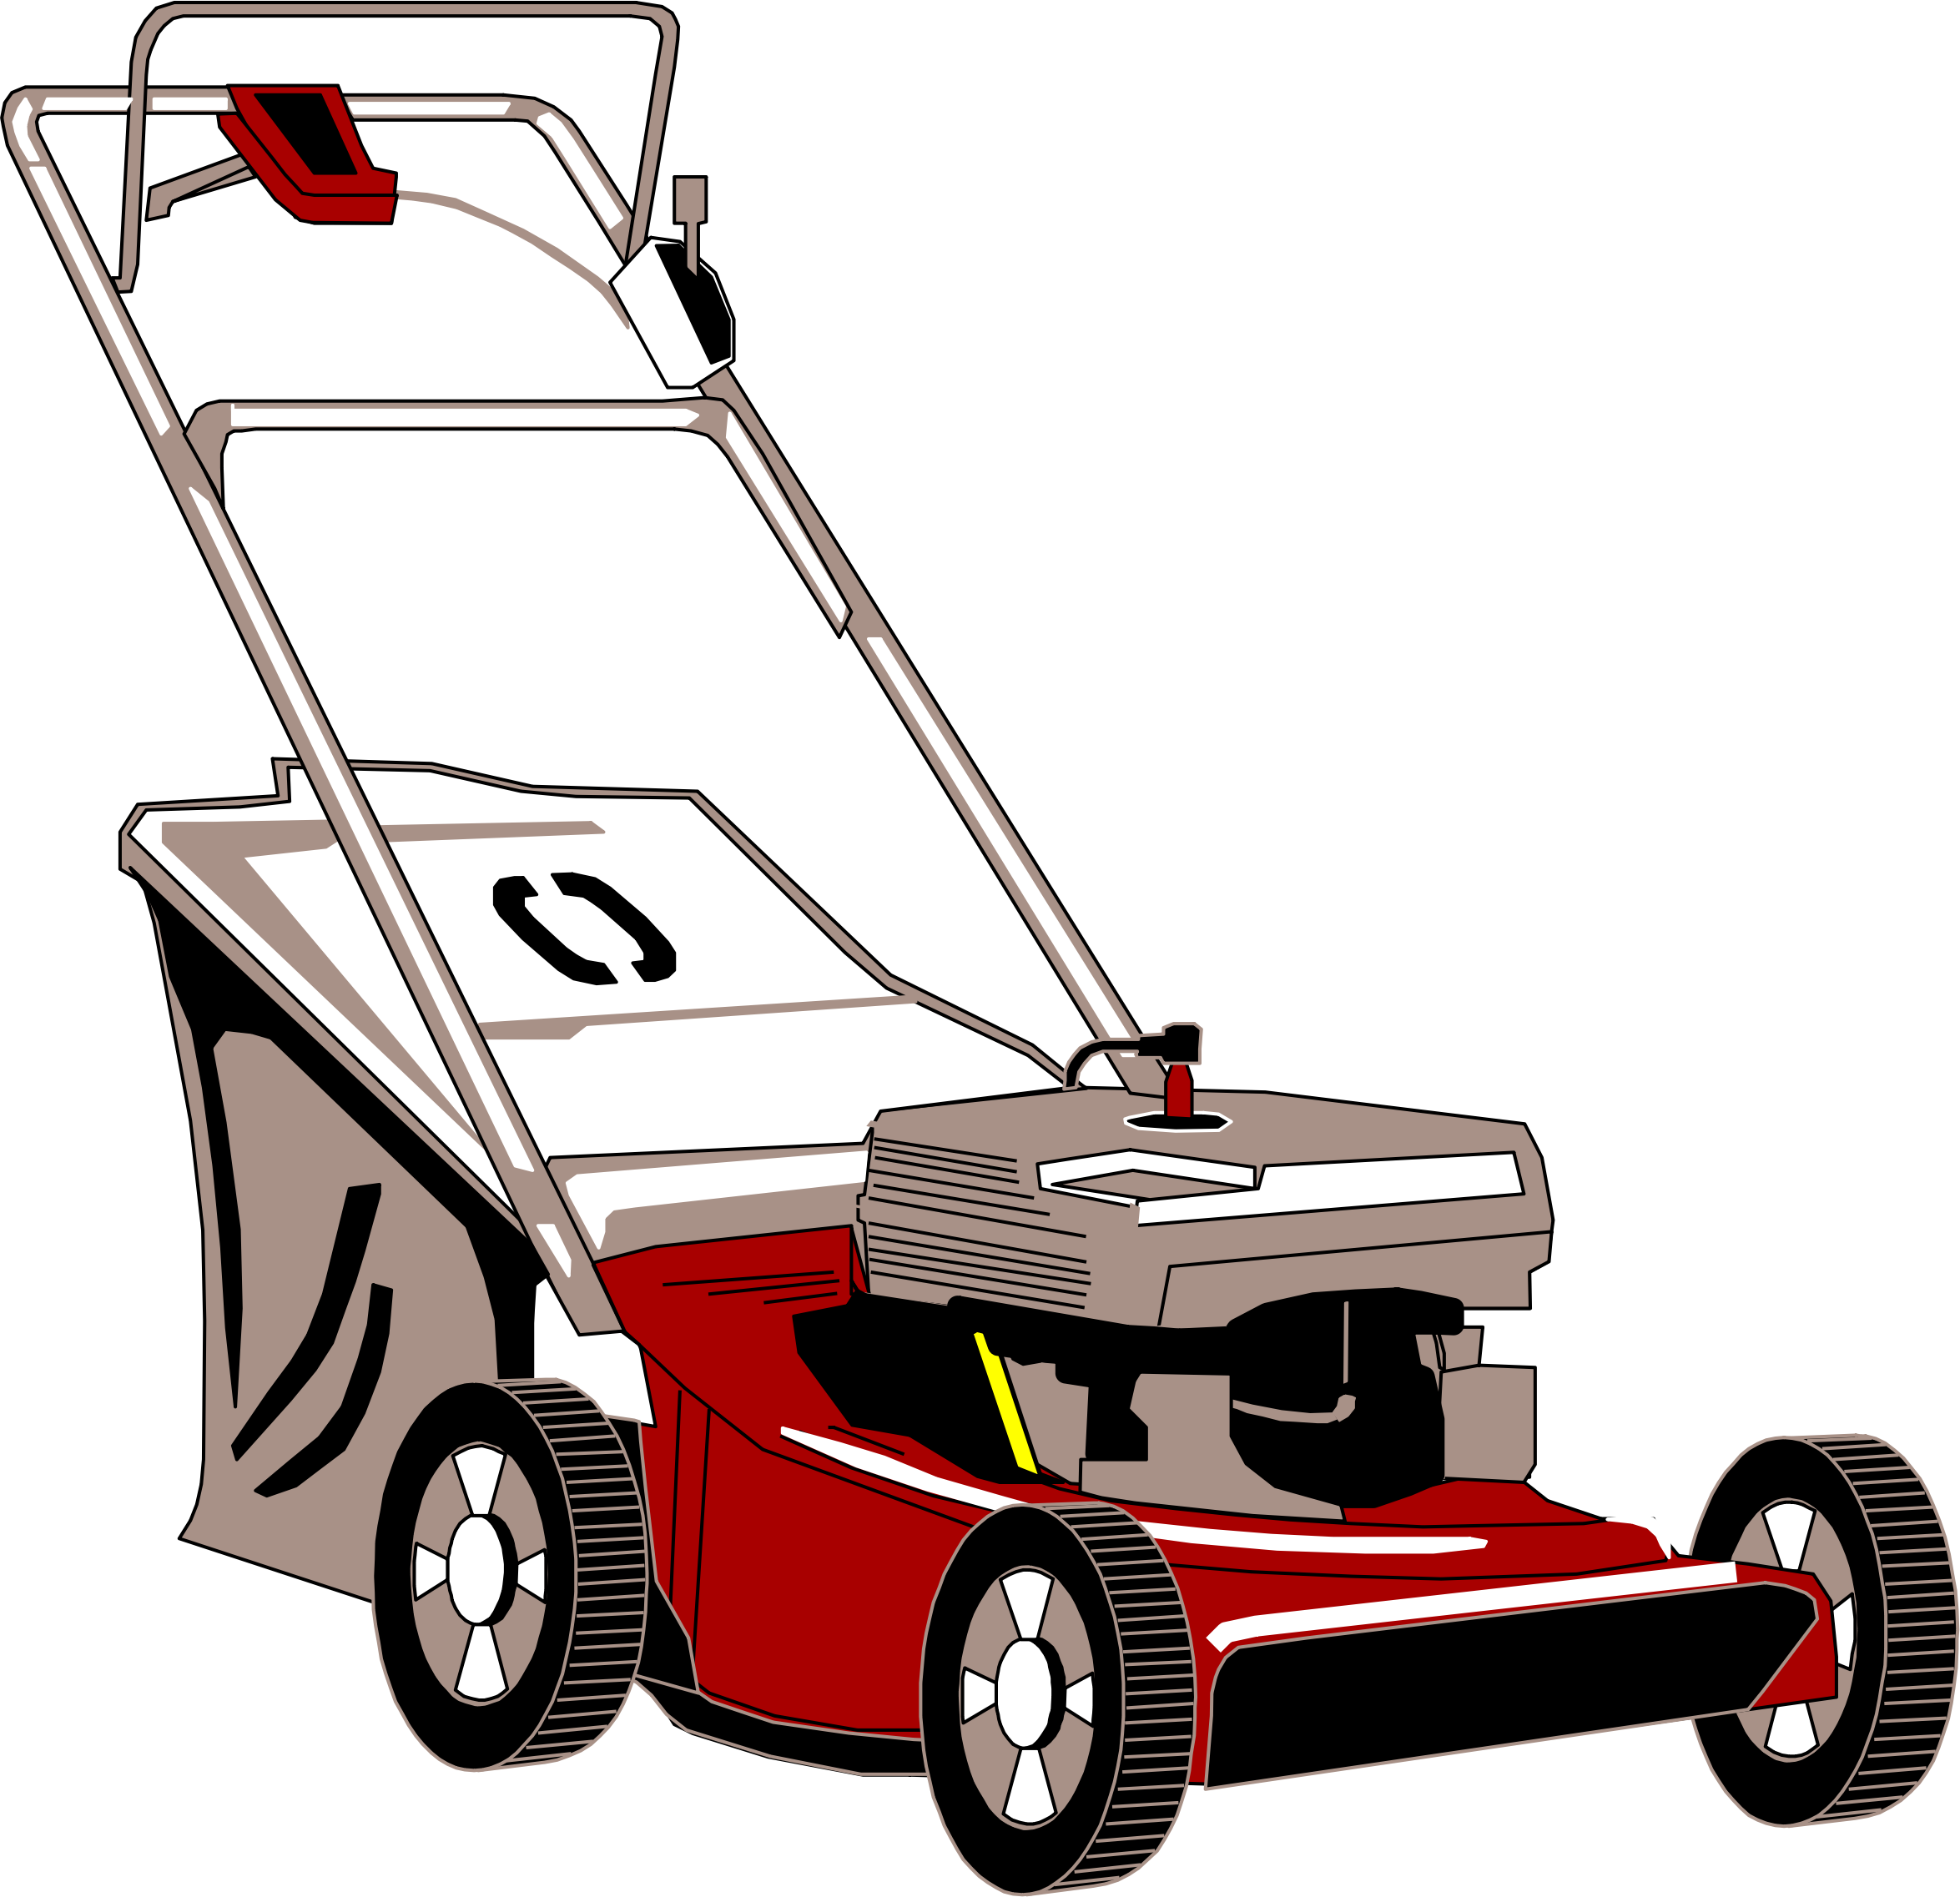 png library download Lawnmower with bagger big. Lawn mower clipart.